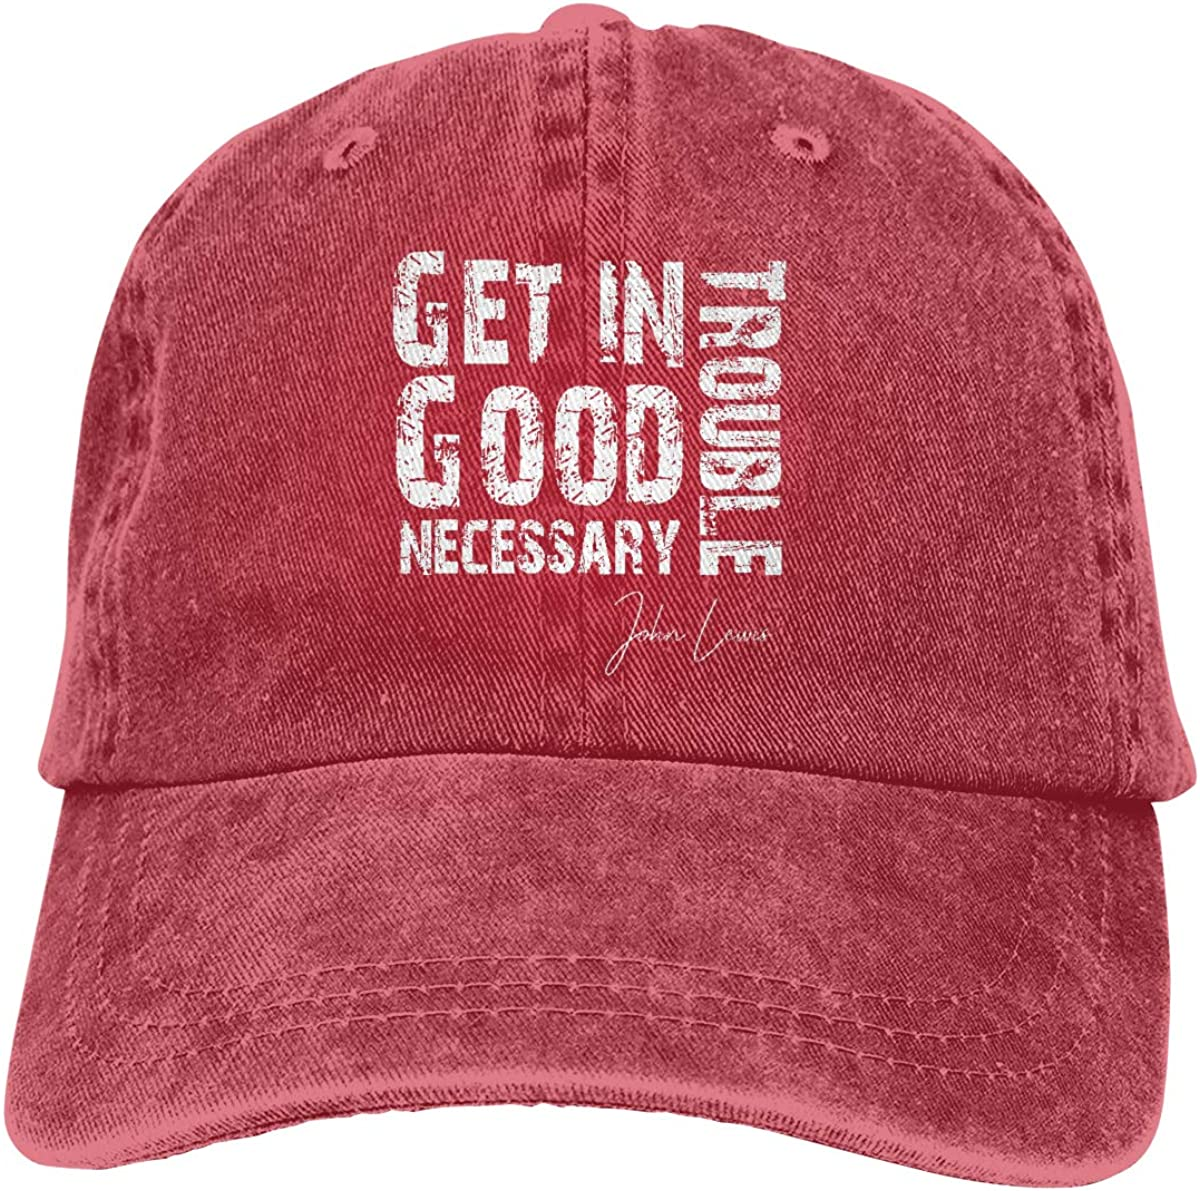 Get in Trouble Good Trouble Necessary Trouble John Adjustable Baseball Cap Unisex Washable Cotton Trucker Hat Dad Hat